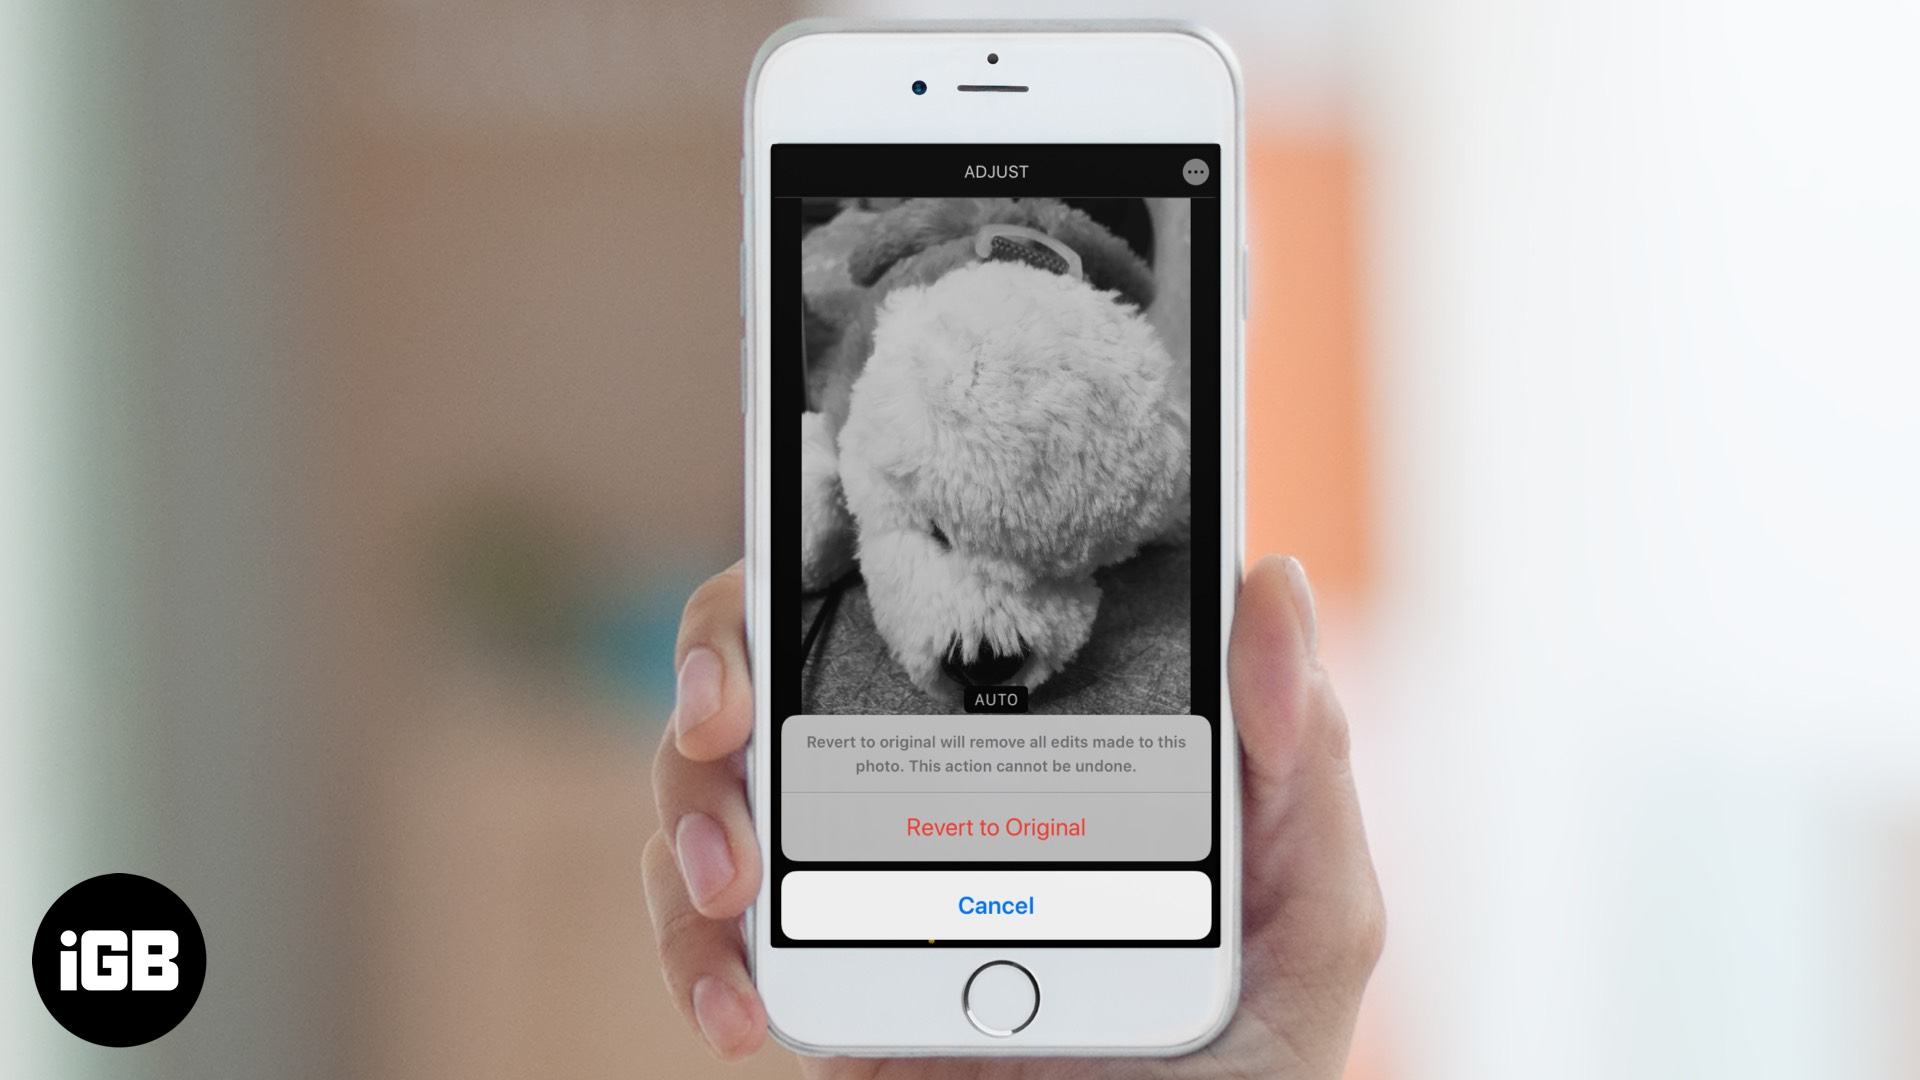 How to Remove Filters and Effects from Photos on iPhone or iPad